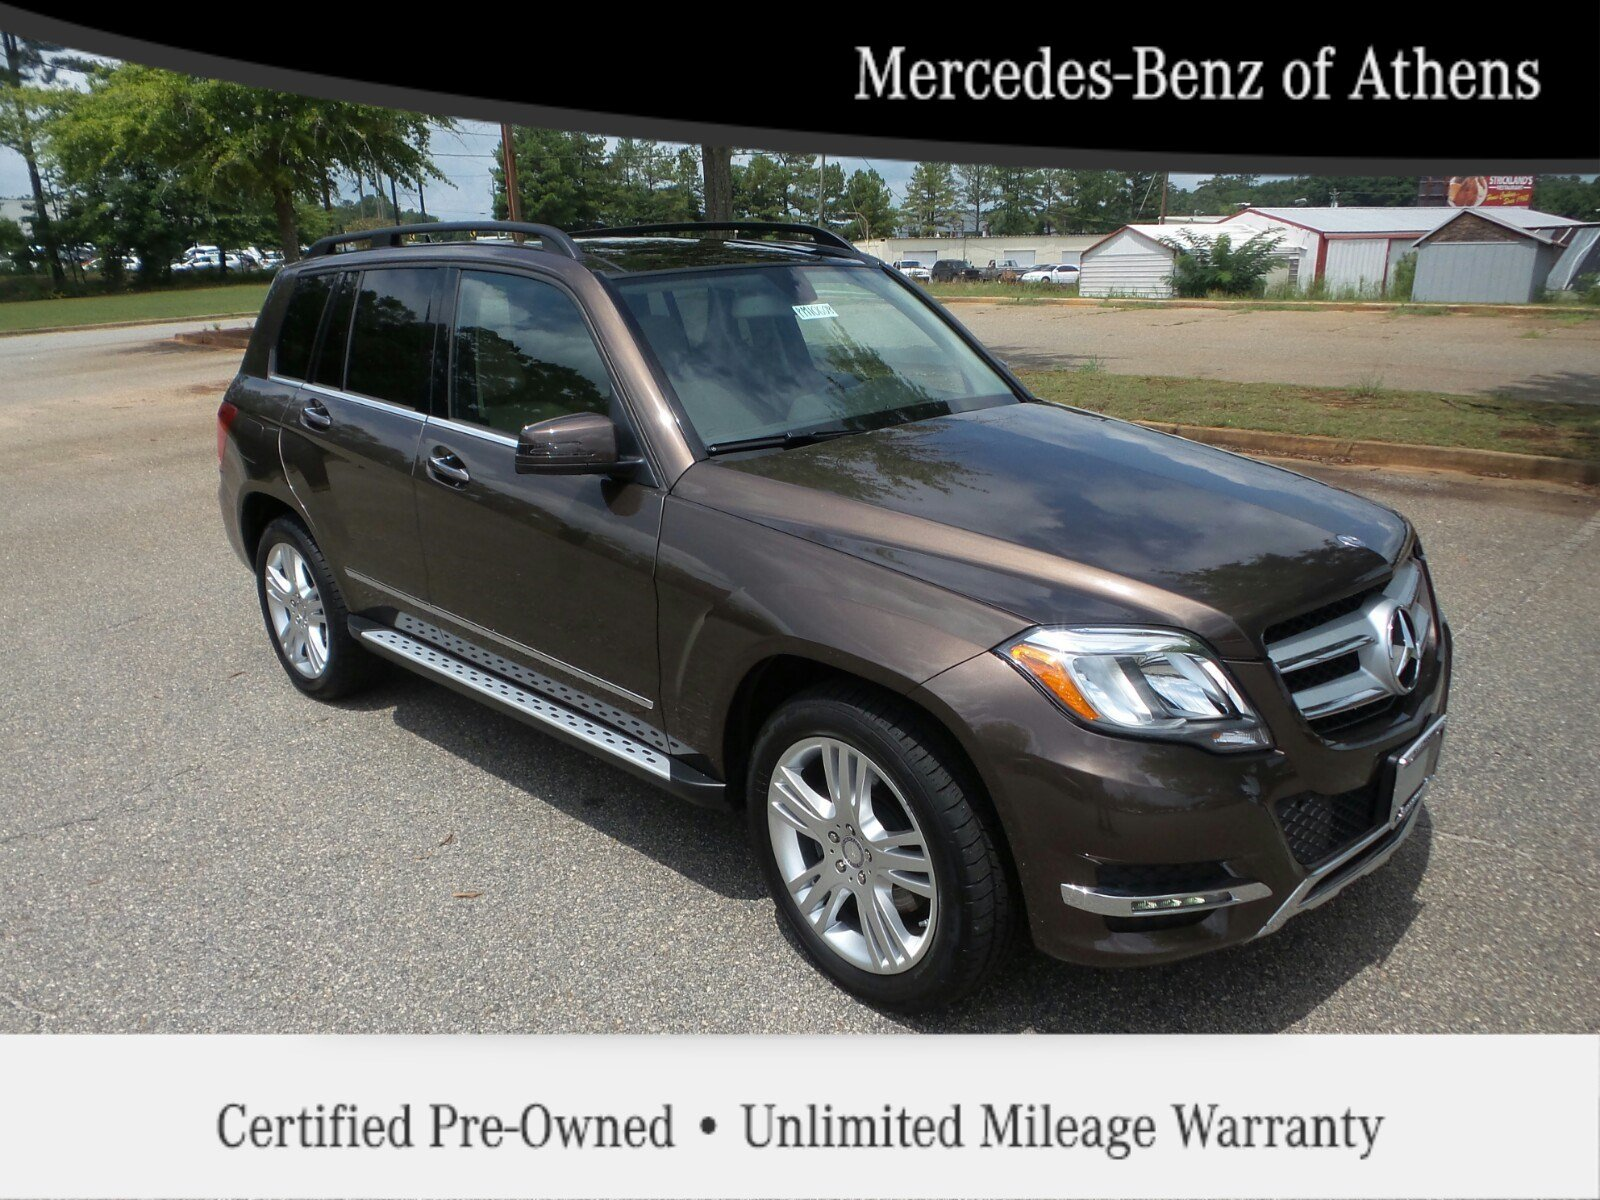 Certified pre owned 2014 mercedes benz glk glk350 suv in for Mercedes benz buckhead preowned